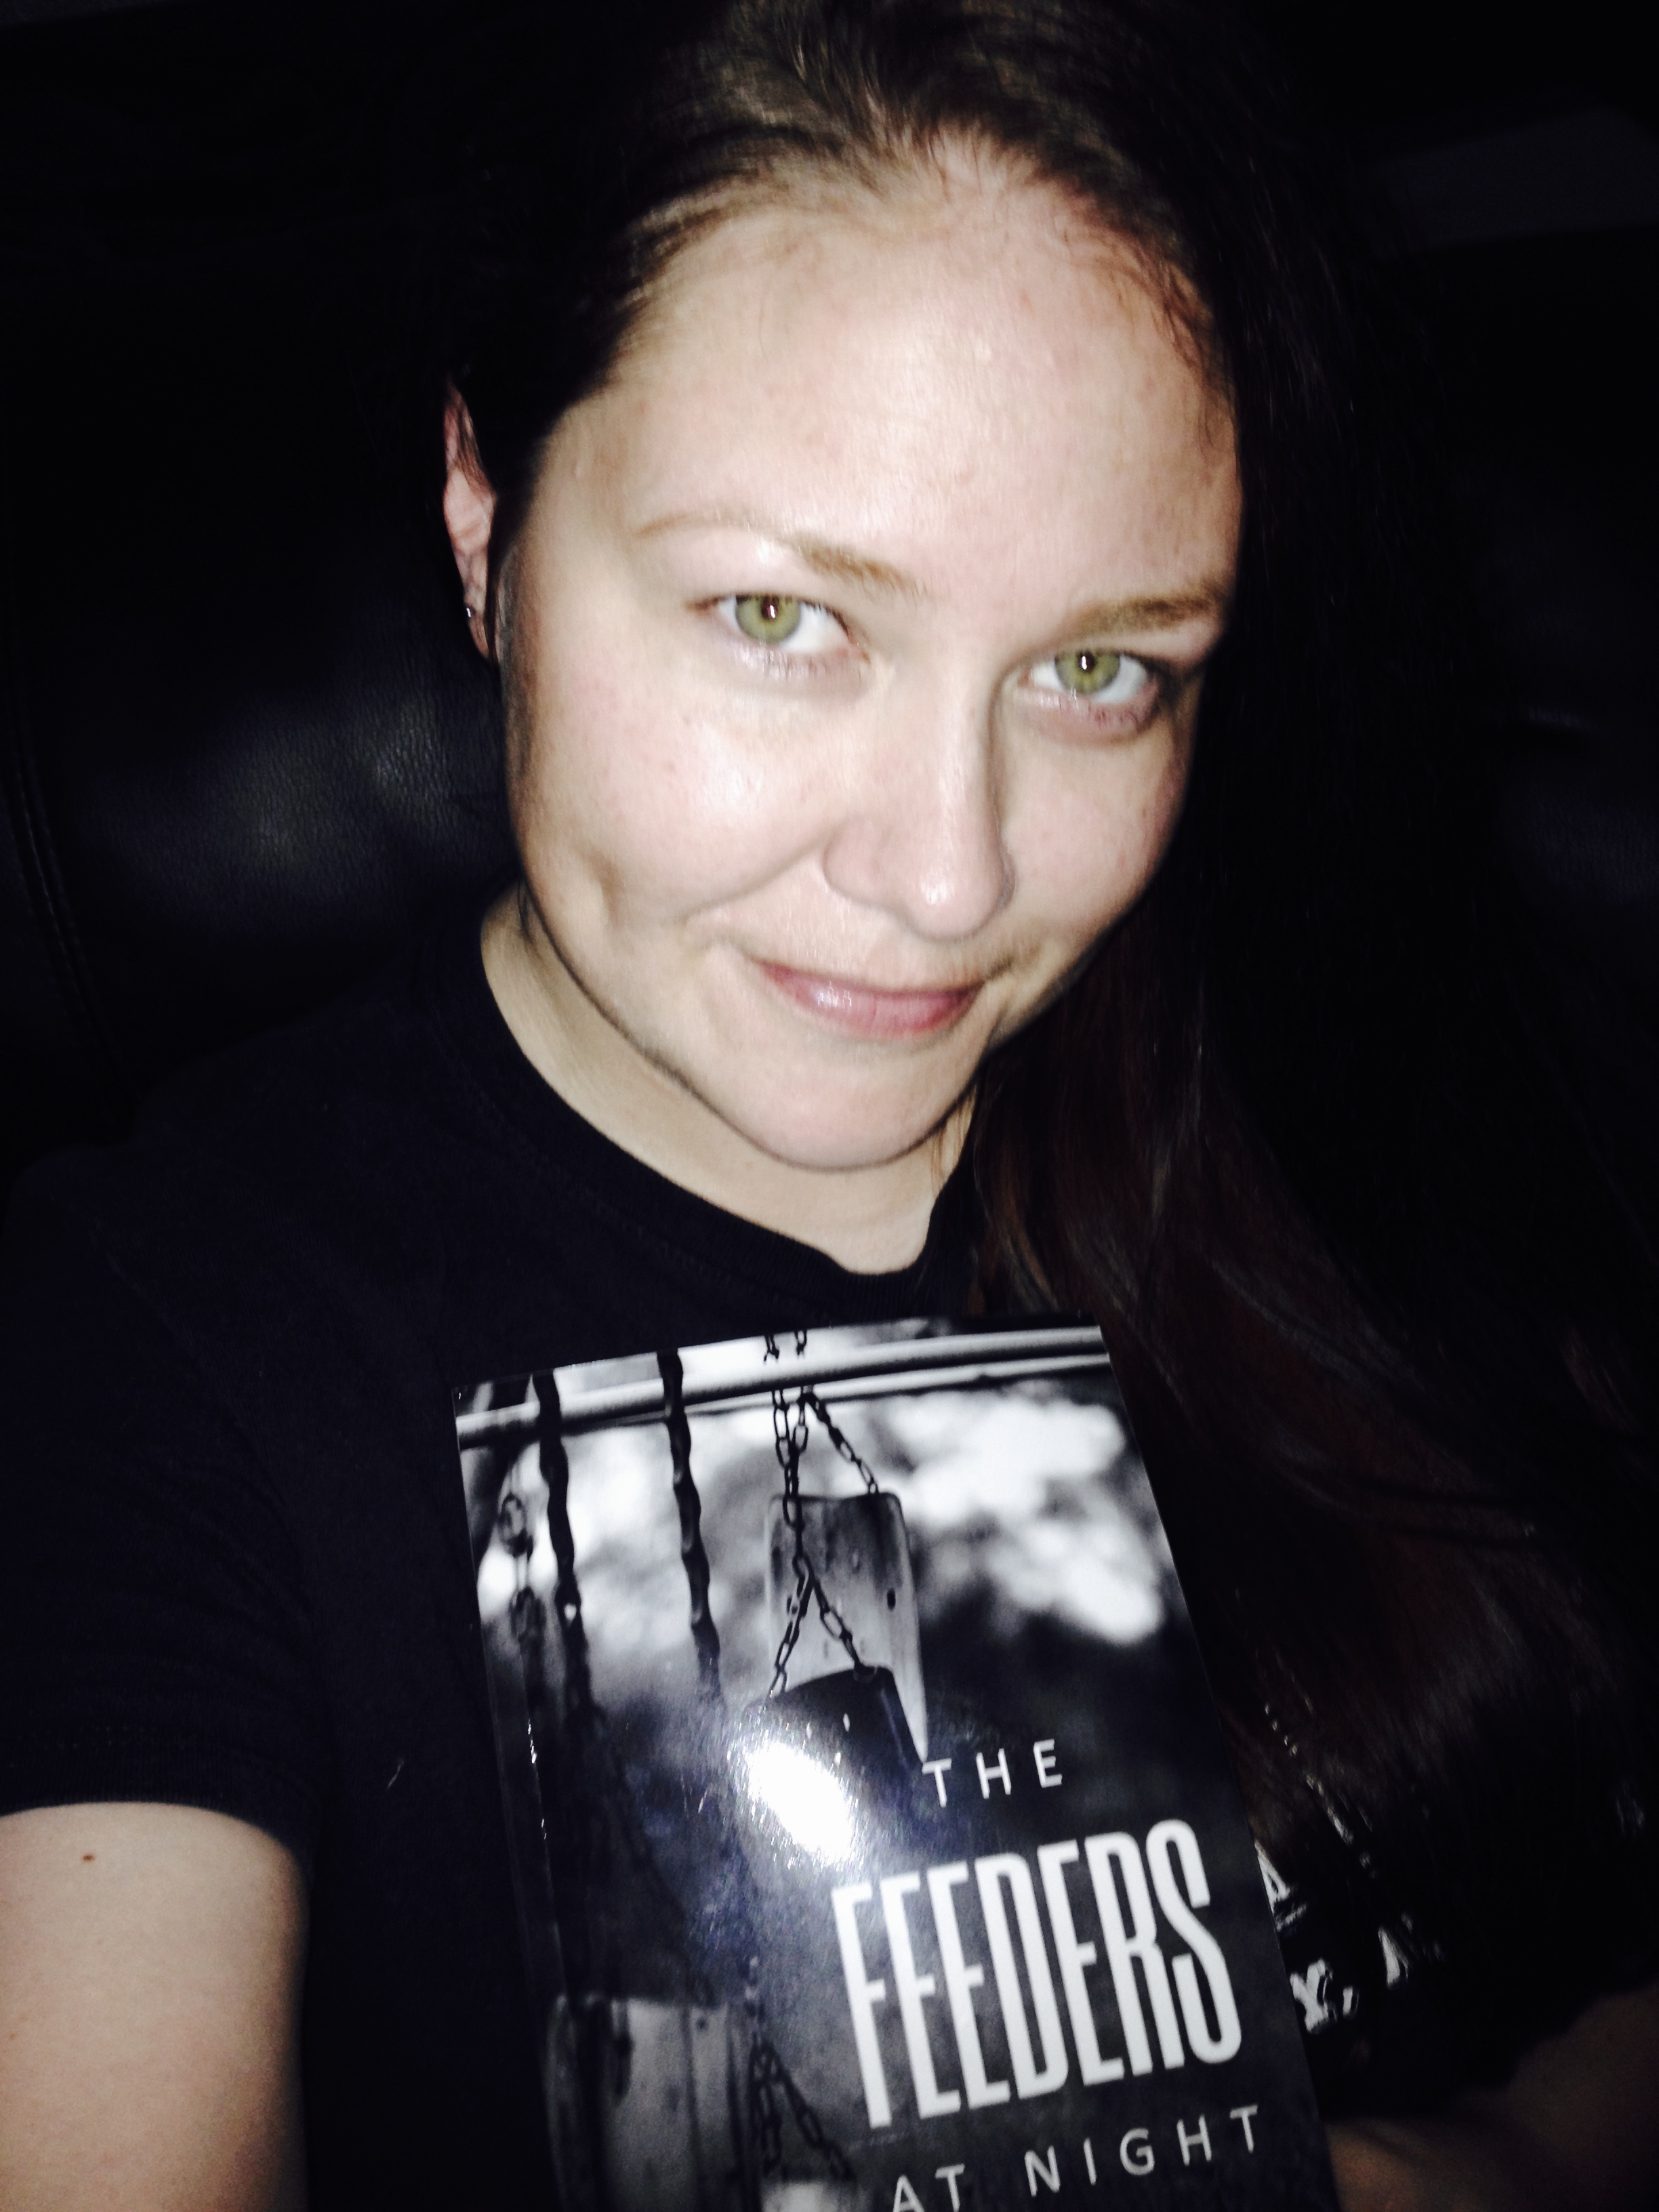 The Author, Rebecca Genesis, and the possible haunted book, The Feeders at Night